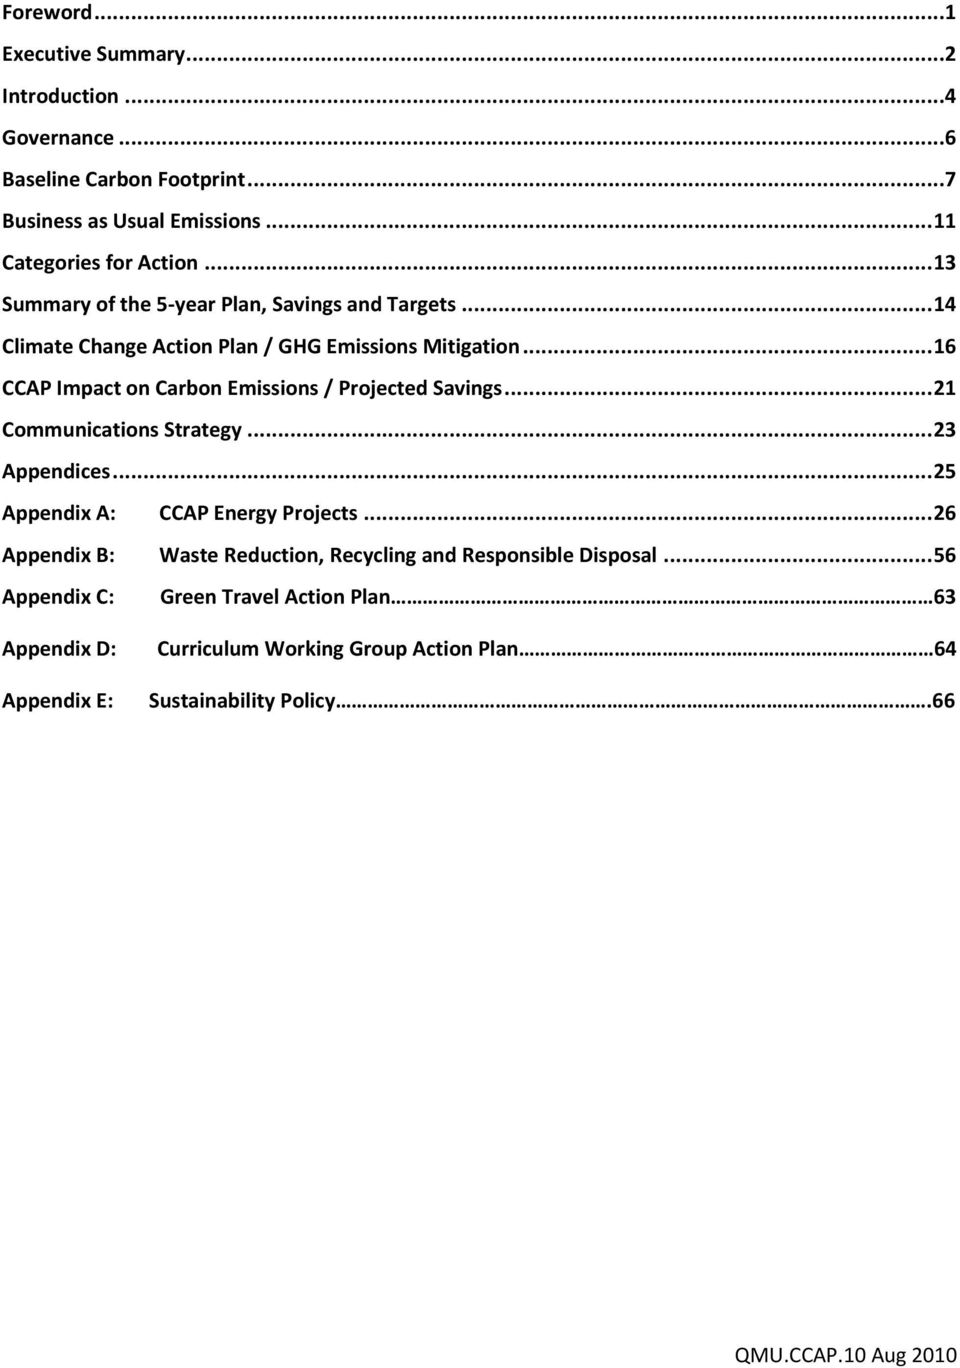 .. 16 CCAP Impact on Carbon Emissions / Projected Savings... 21 Communications Strategy... 23 Appendices... 25 Appendix A: CCAP Energy Projects.